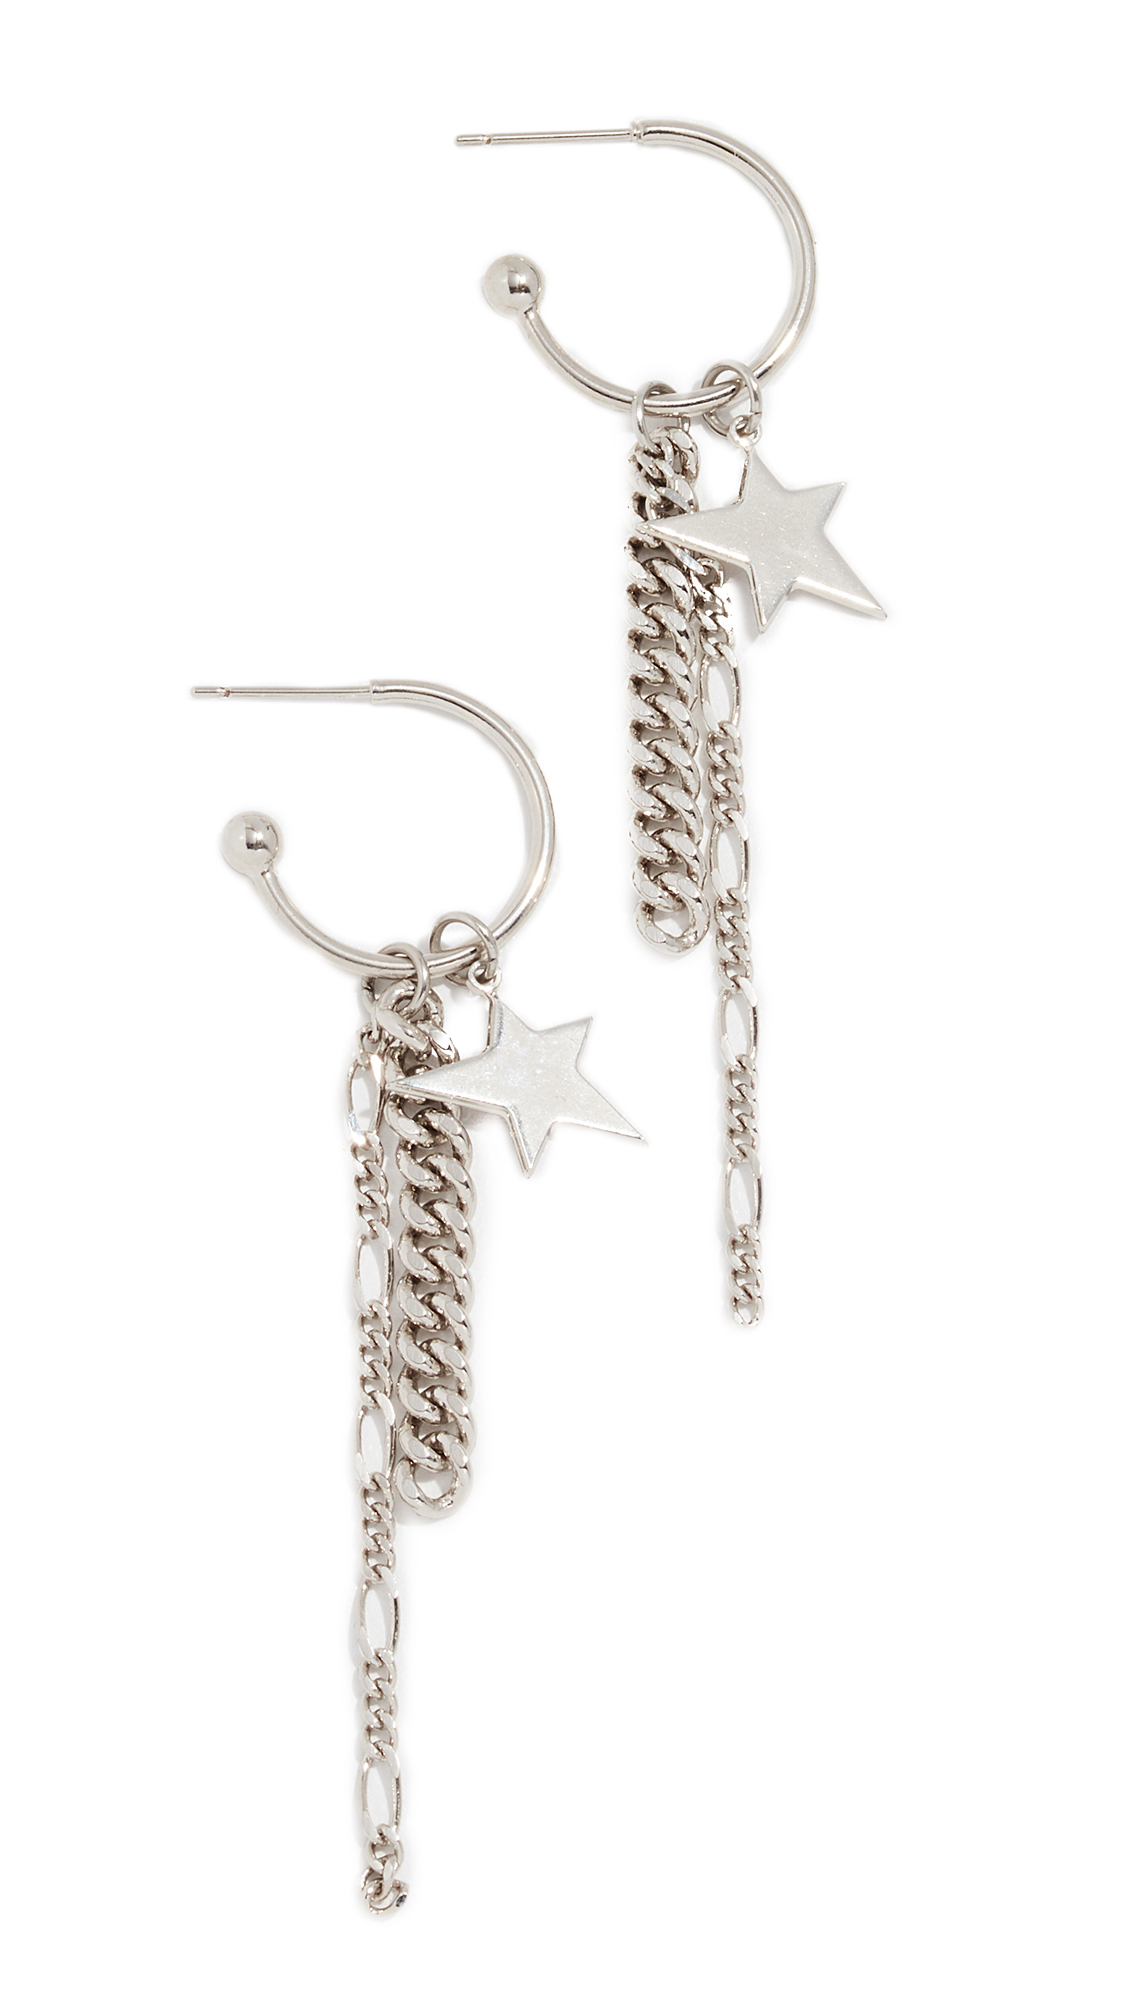 Justine Clenquet Mandy Earrings In Silver